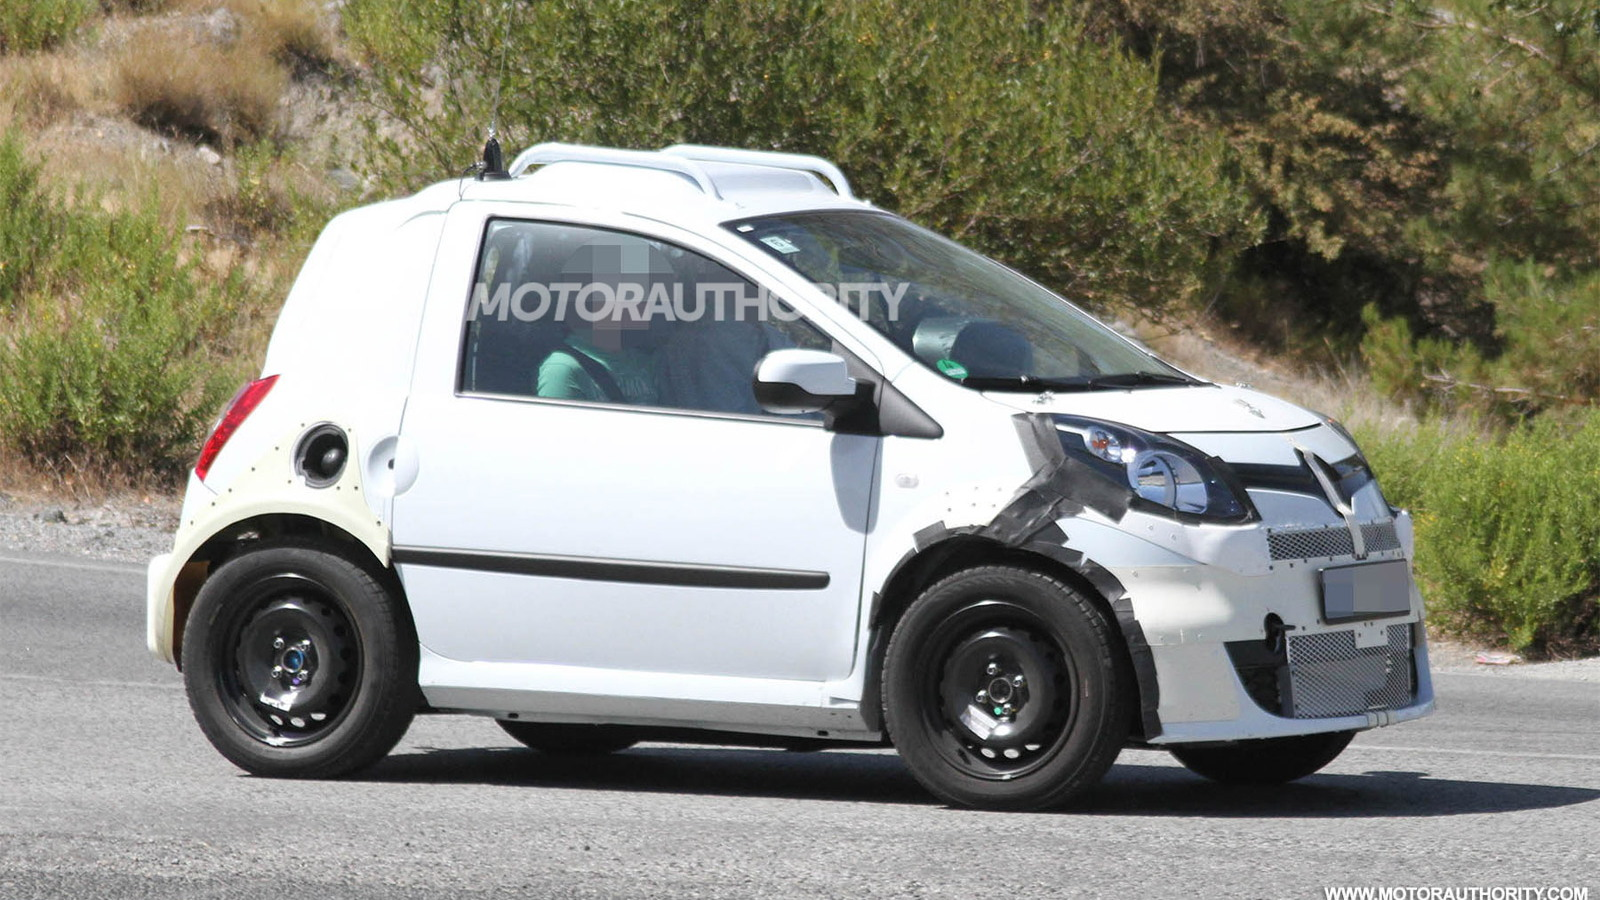 2015 Smart Fortwo test mule spy shots